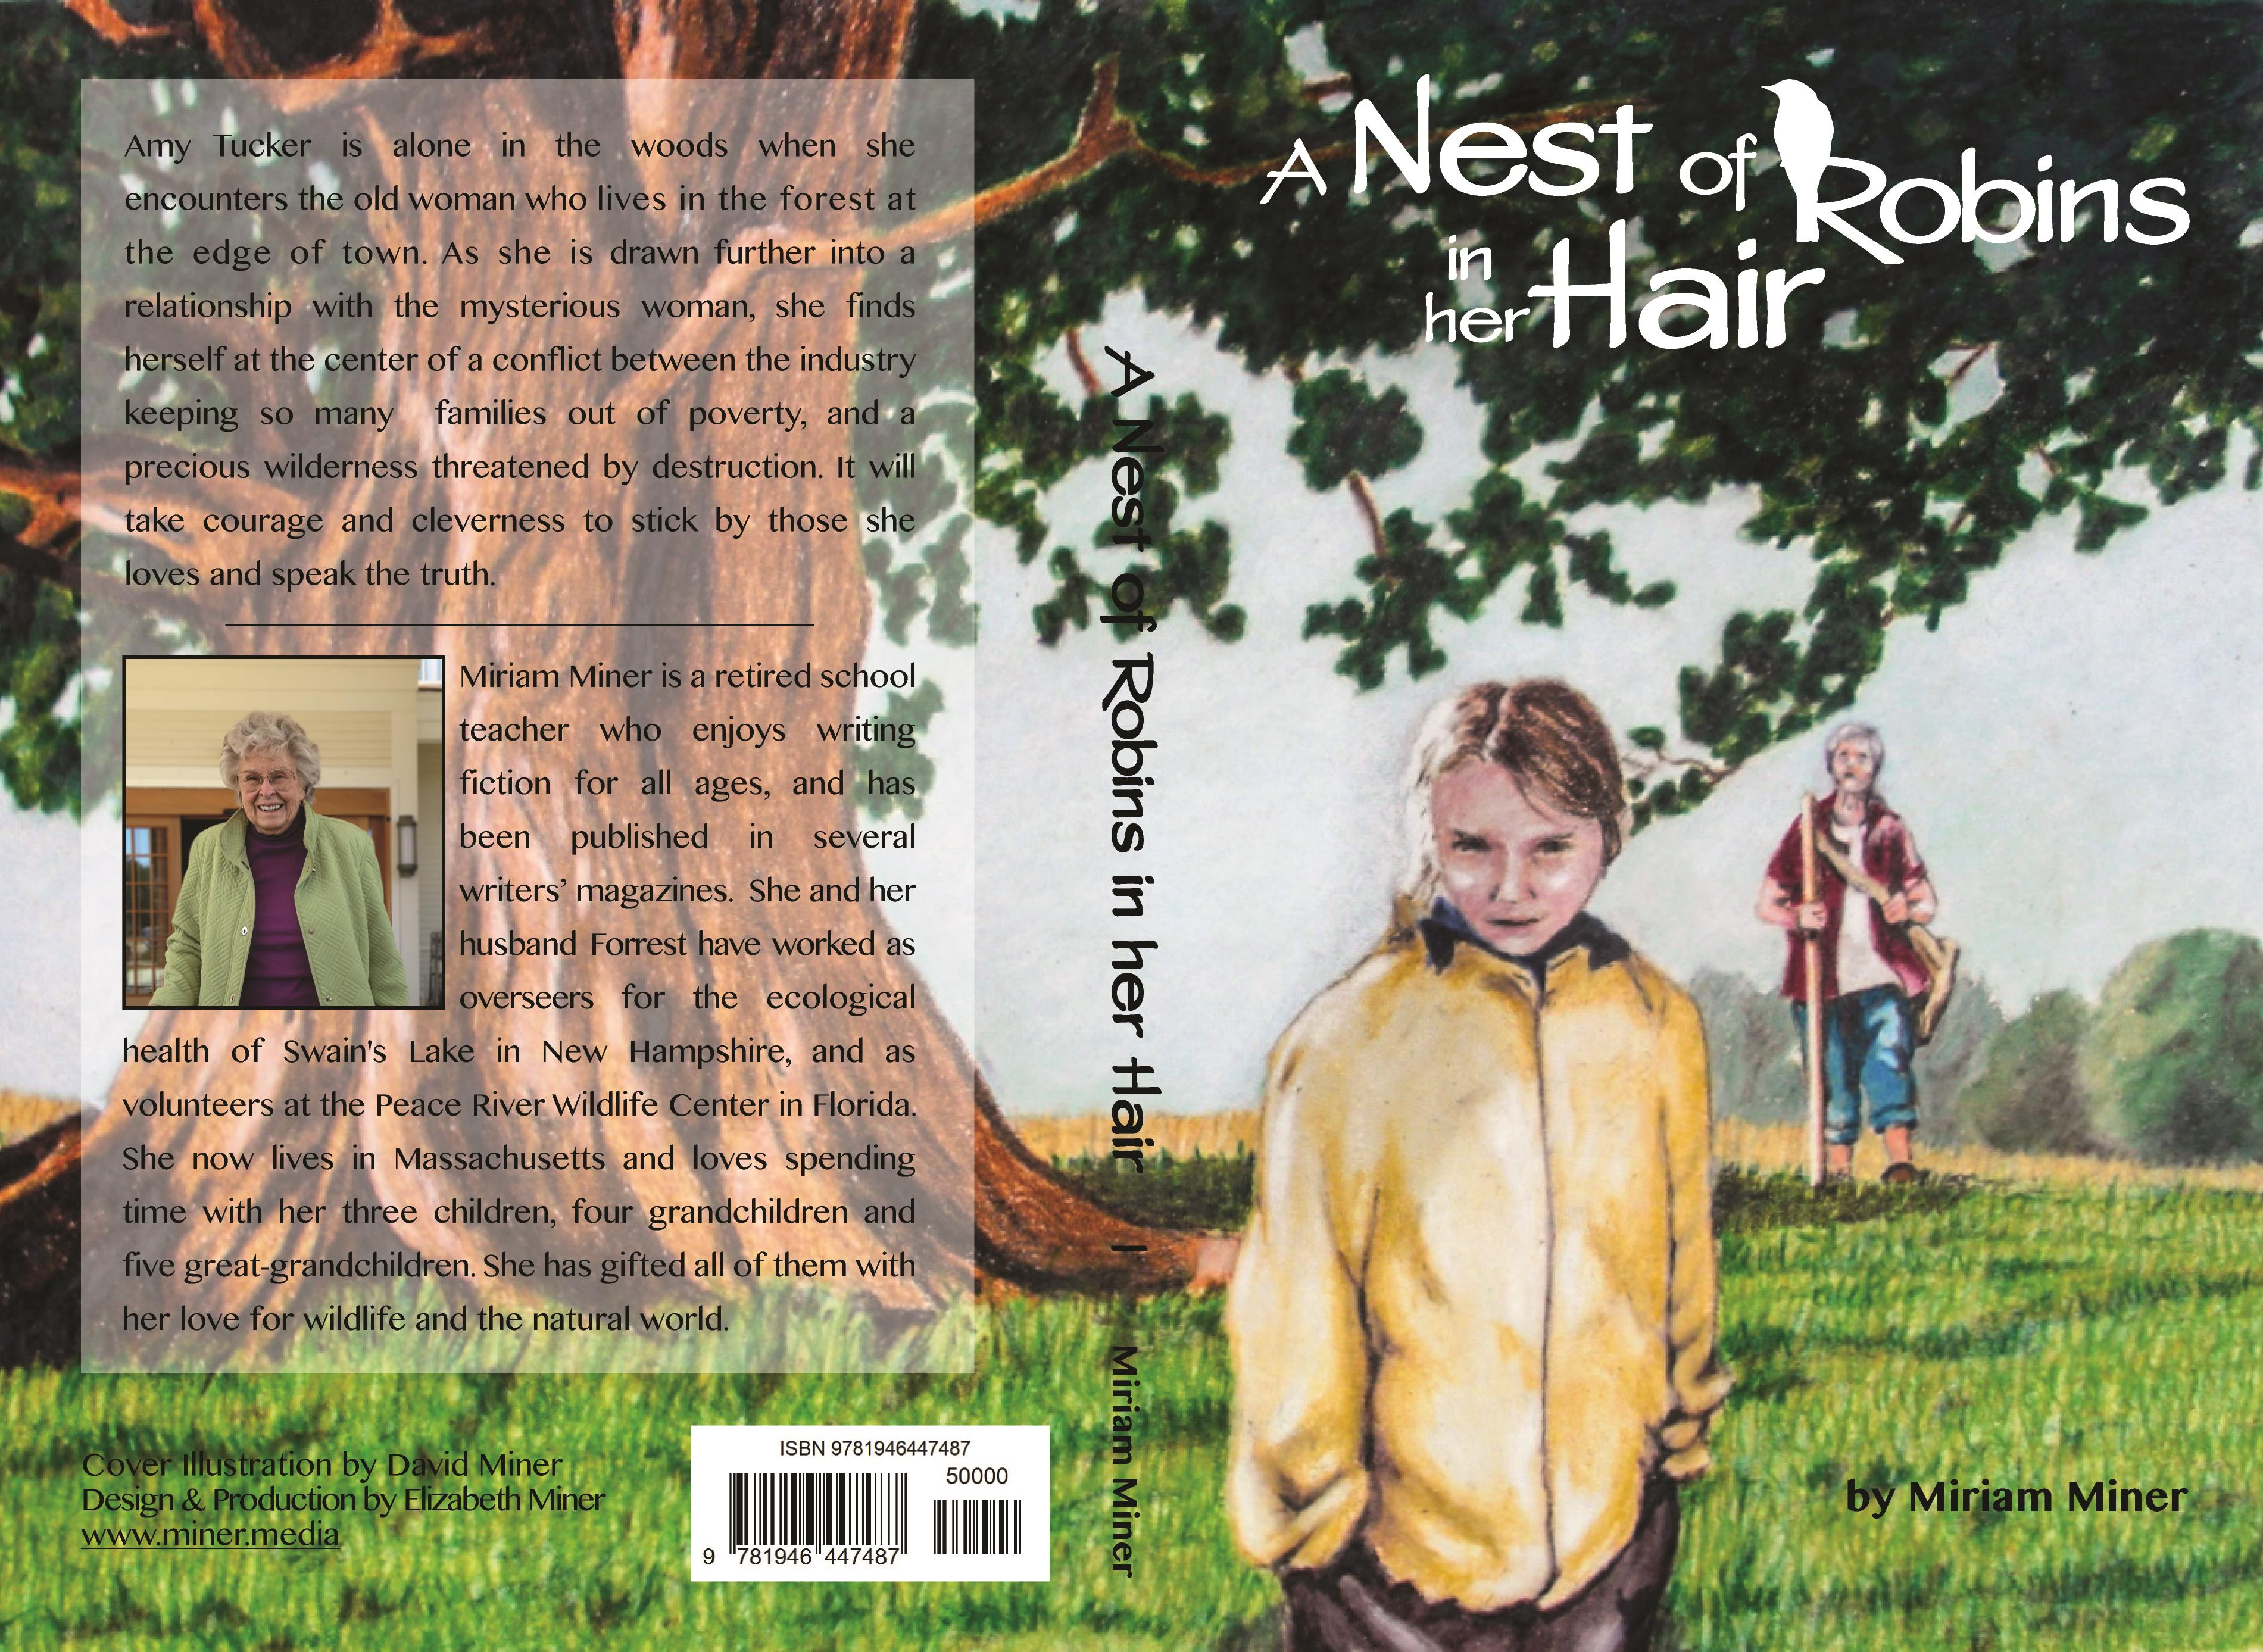 A Nest of Robins in her Hair cover image